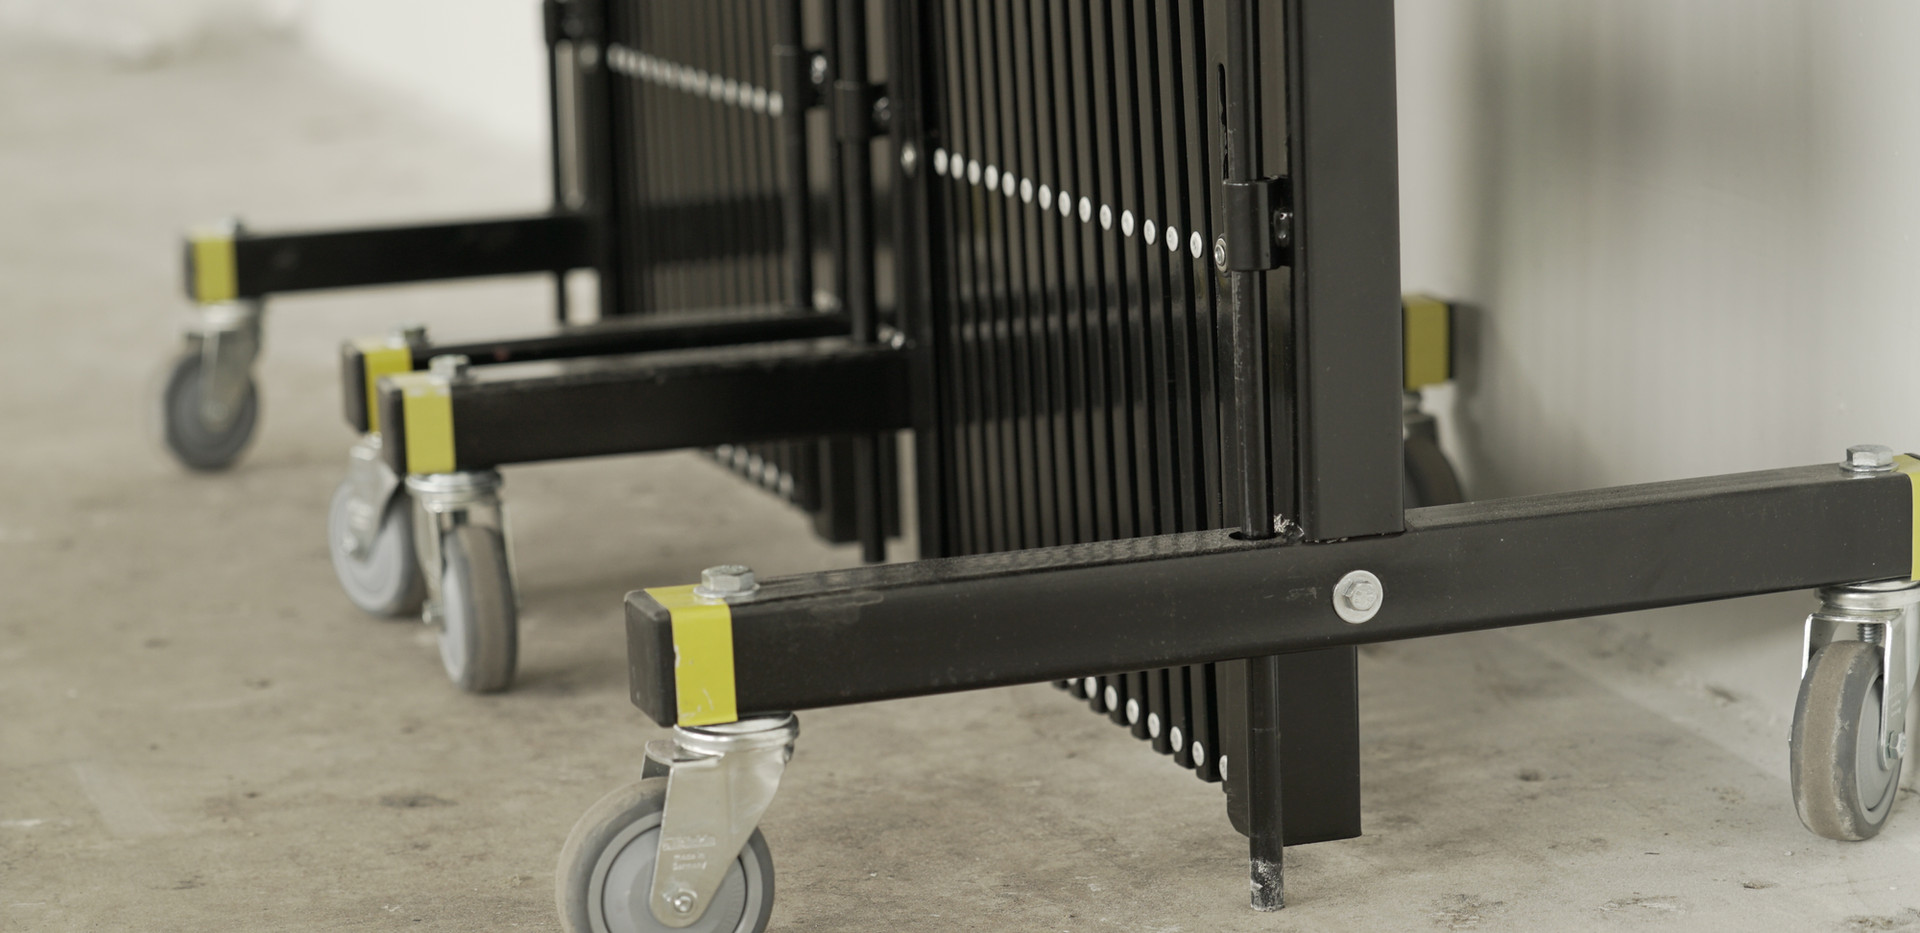 Security Barriers - wheels for mobility.